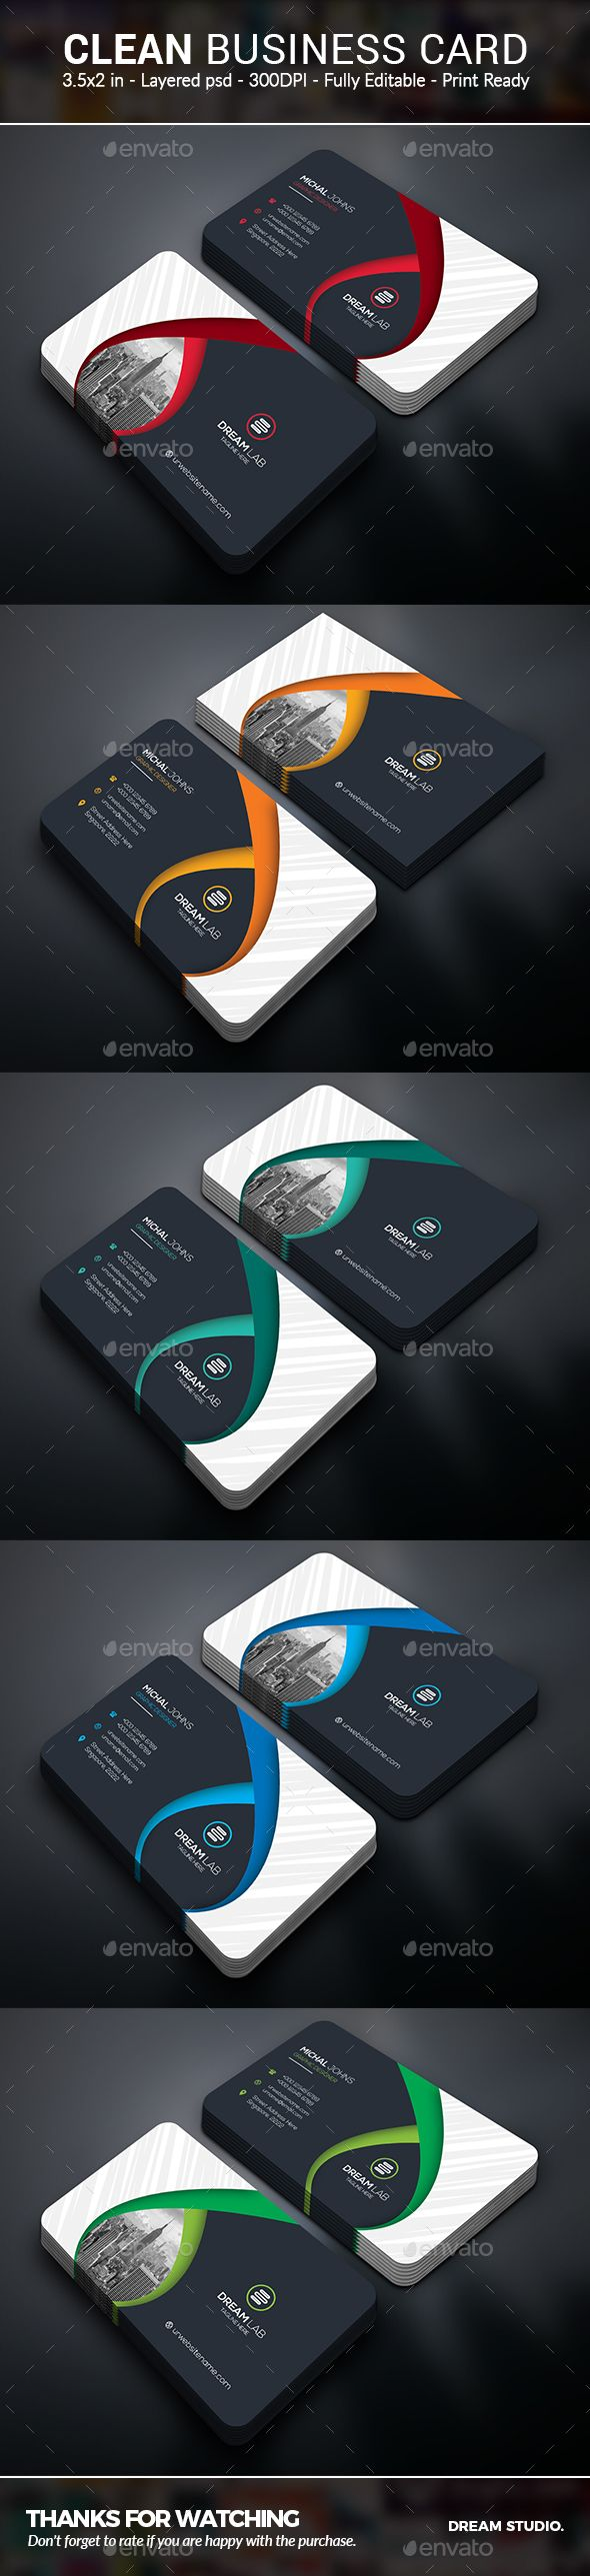 568 best Business Card Inspiration images on Pinterest | Business ...